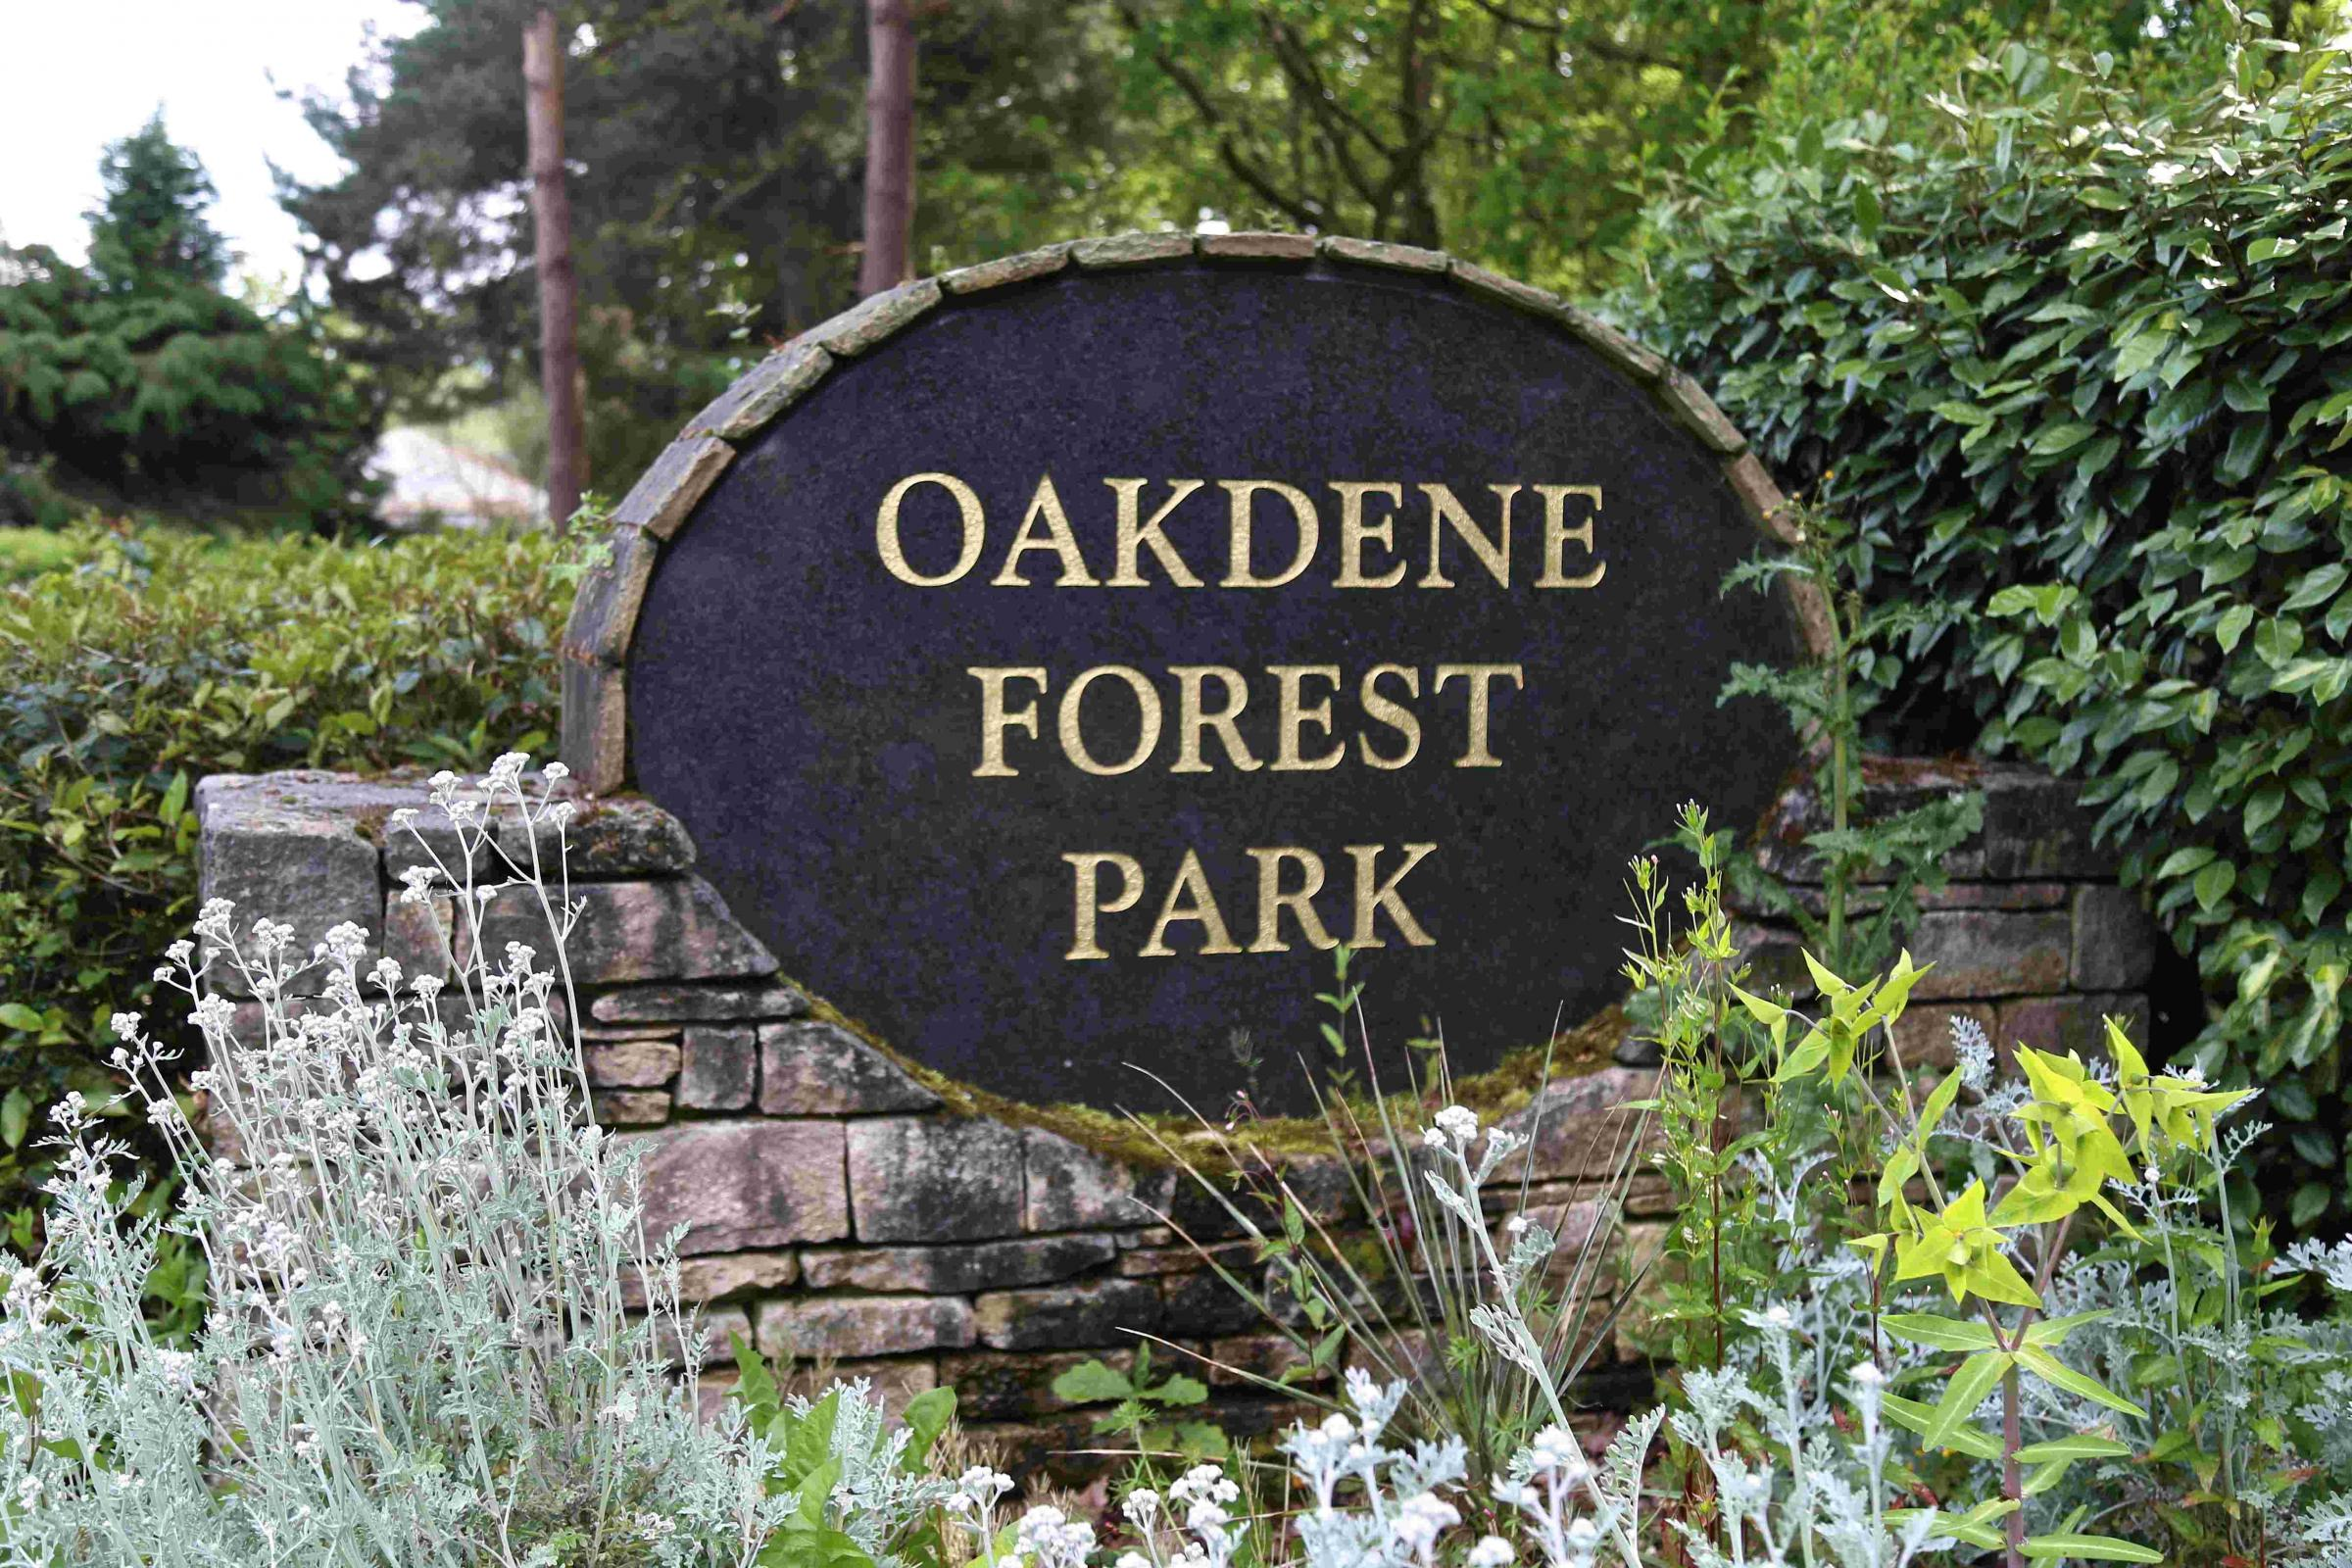 Manhunt underway after woman stabbed at Oakdene Forest Park in St